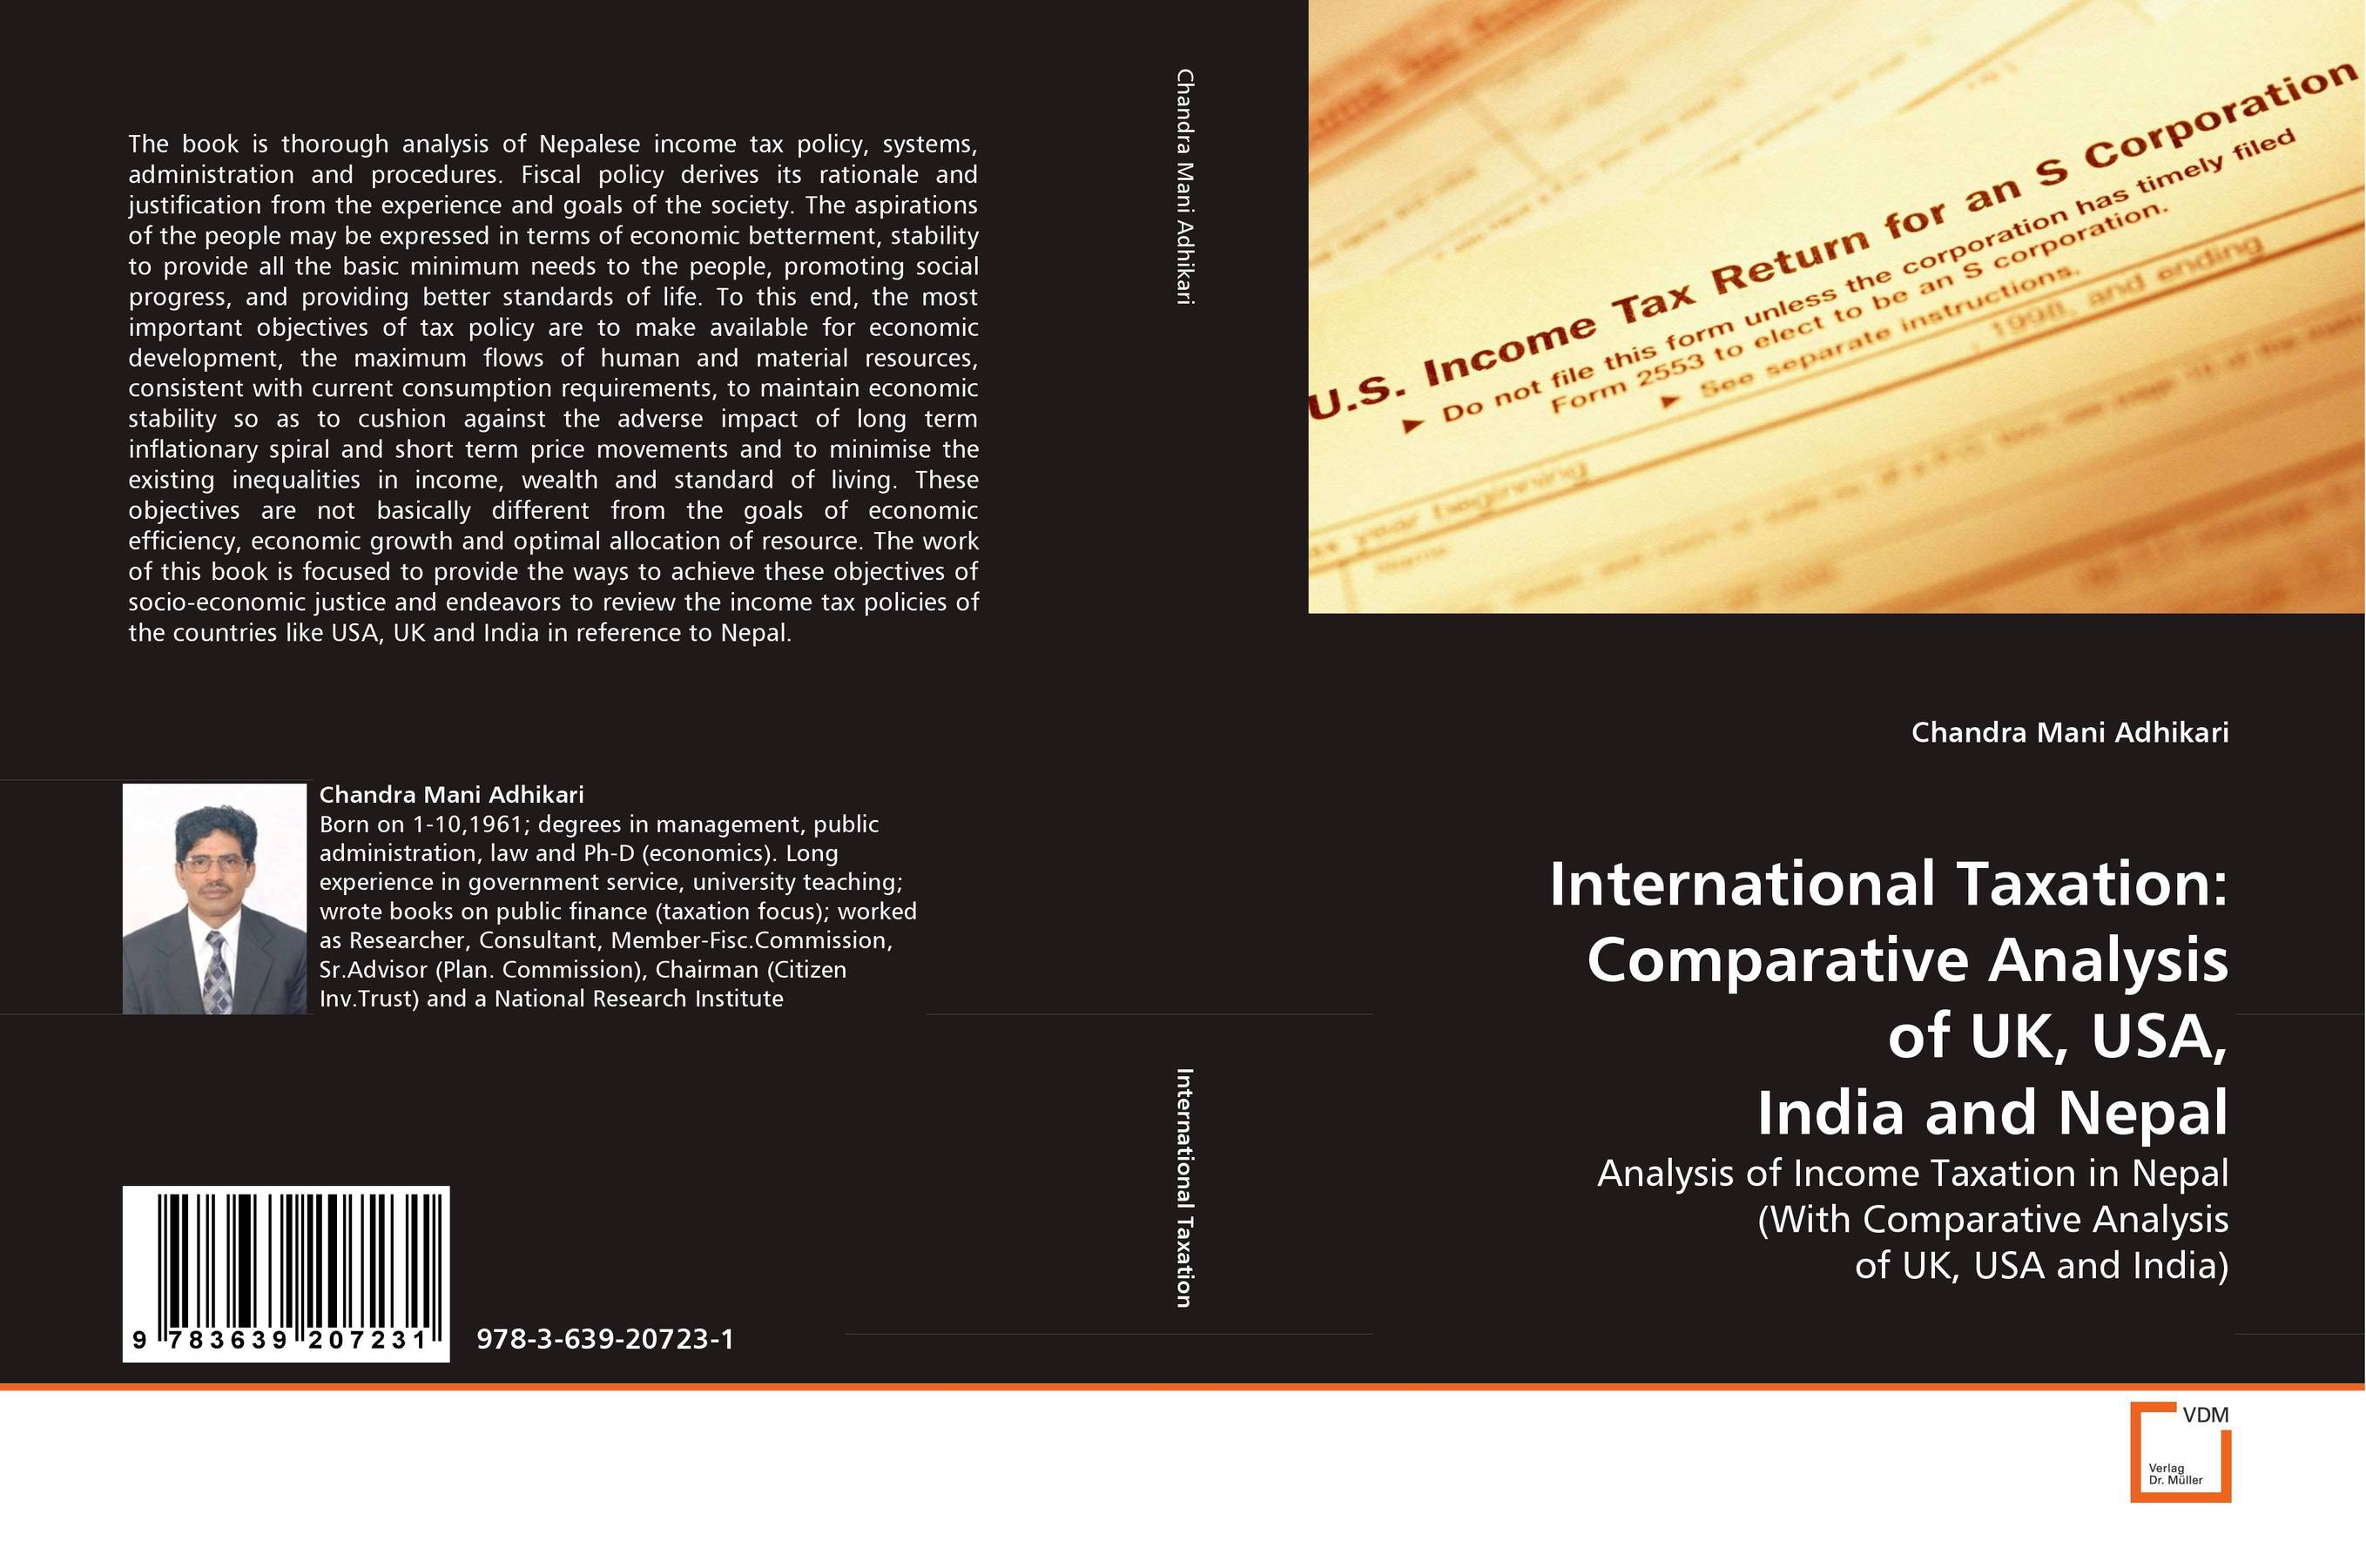 International Taxation: Comparative Analysis of UK, USA, India and Nepal kenneth rosen d investing in income properties the big six formula for achieving wealth in real estate